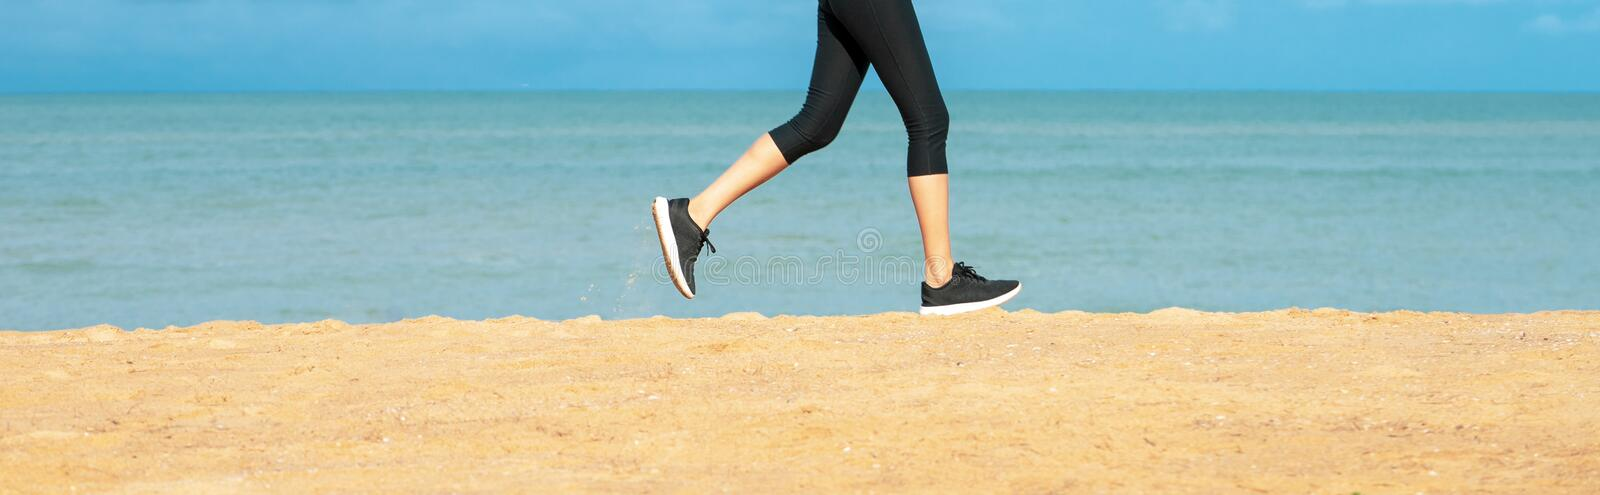 Running woman. Female runner jogging during outdoor workout on beach. Fitness model outdoors. Feet of young woman jogging on the b royalty free stock photo